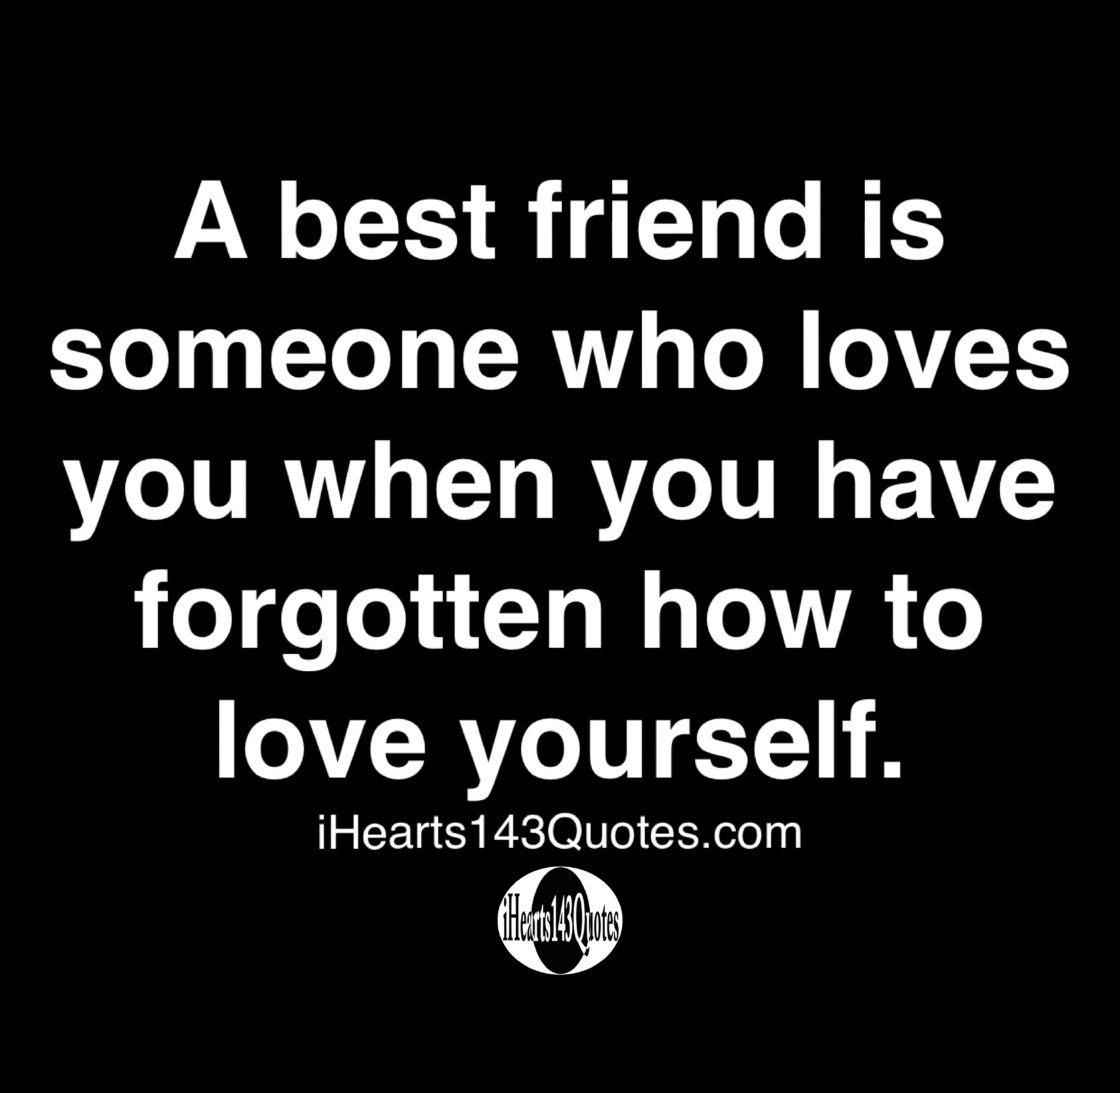 Friends Quotes Page 2 Ihearts143quotes